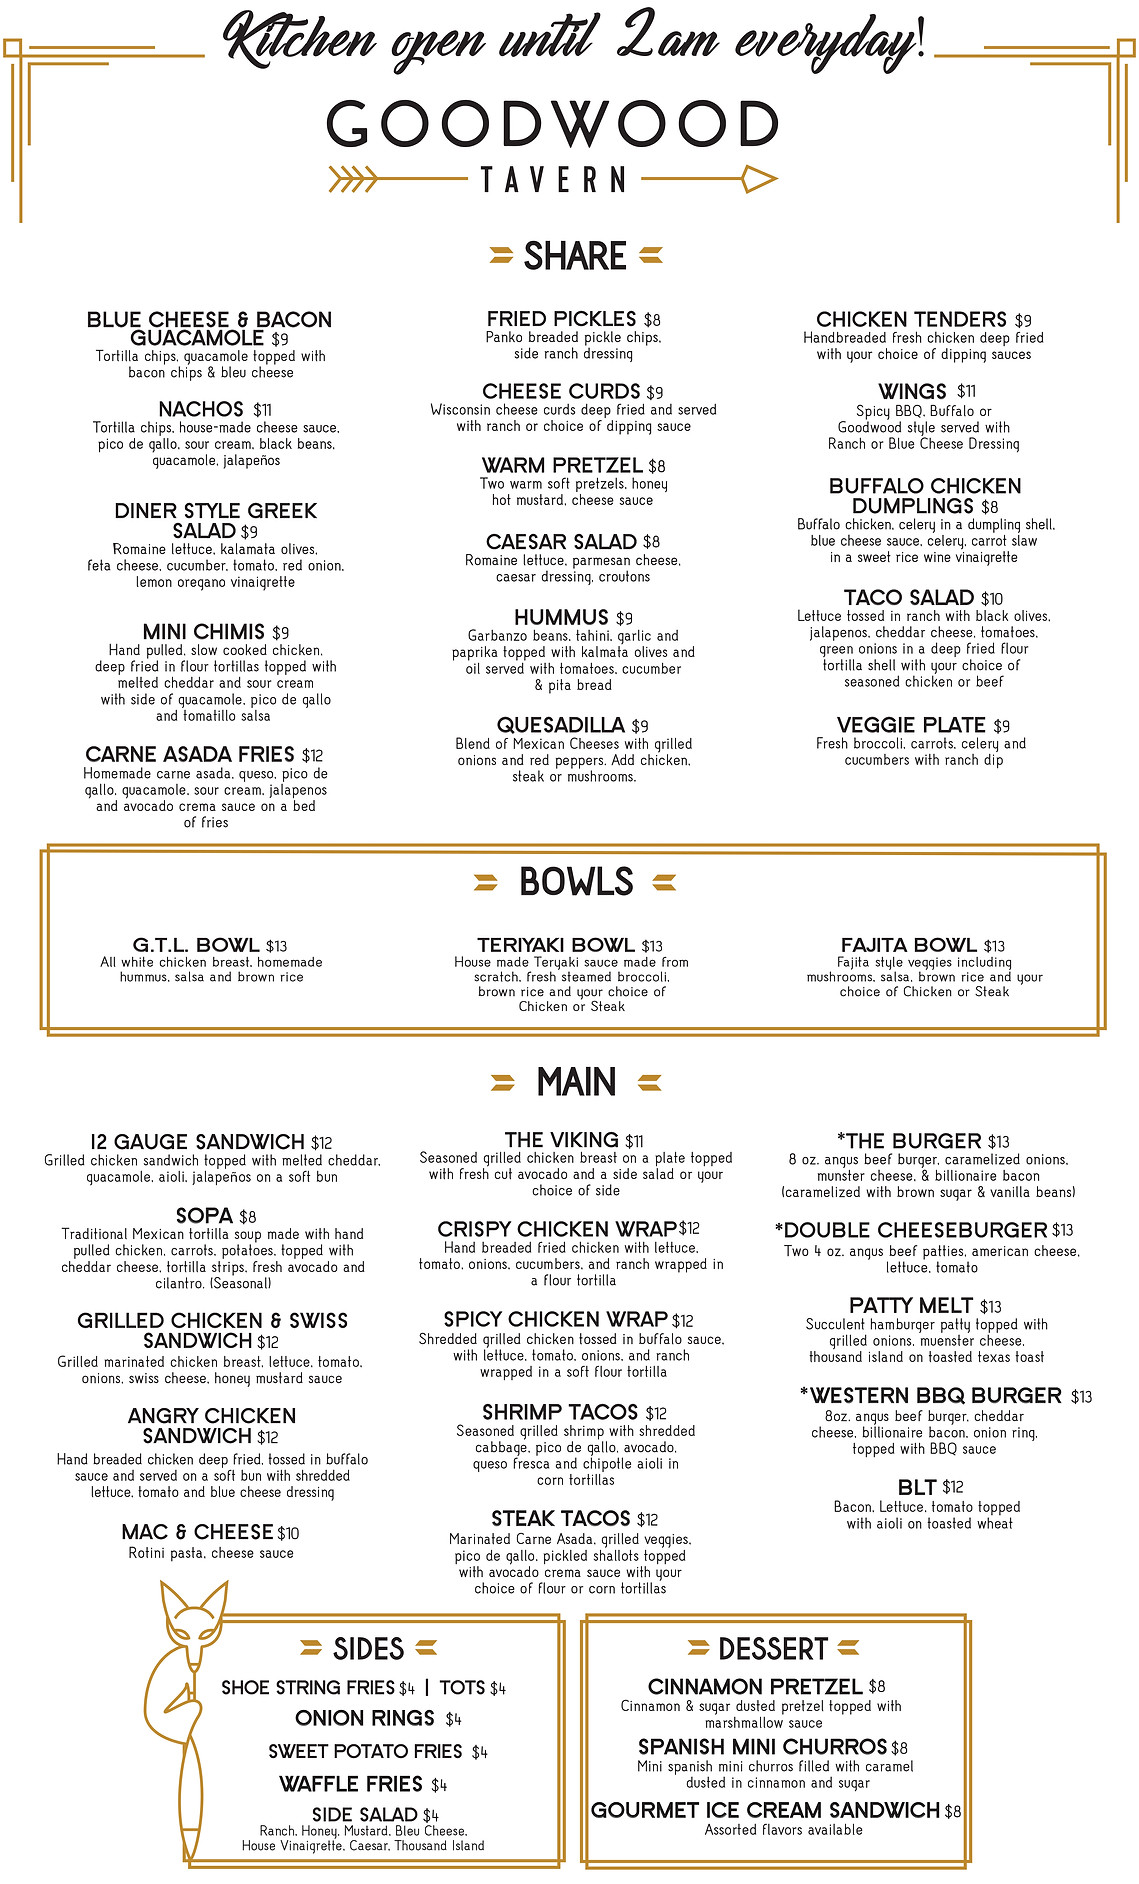 GOODWOOD_MENU_11x17_rev1 (1).jpg